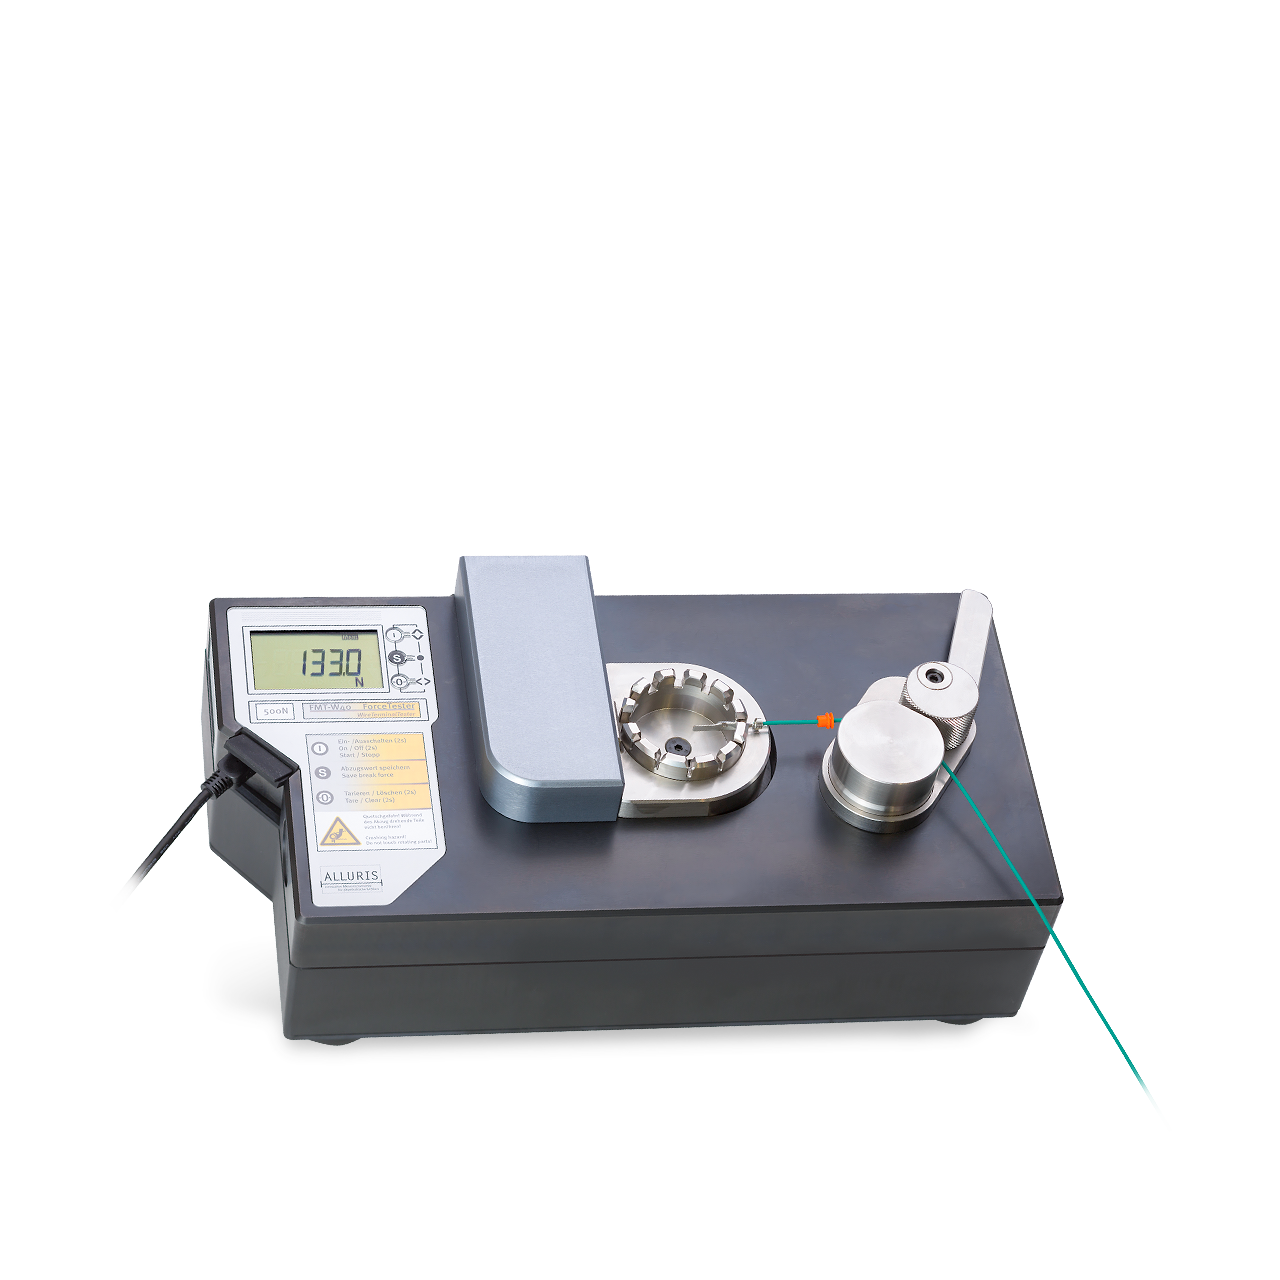 Product shot of wire crimp pull tester by Mecmesin's sister company, Alluris